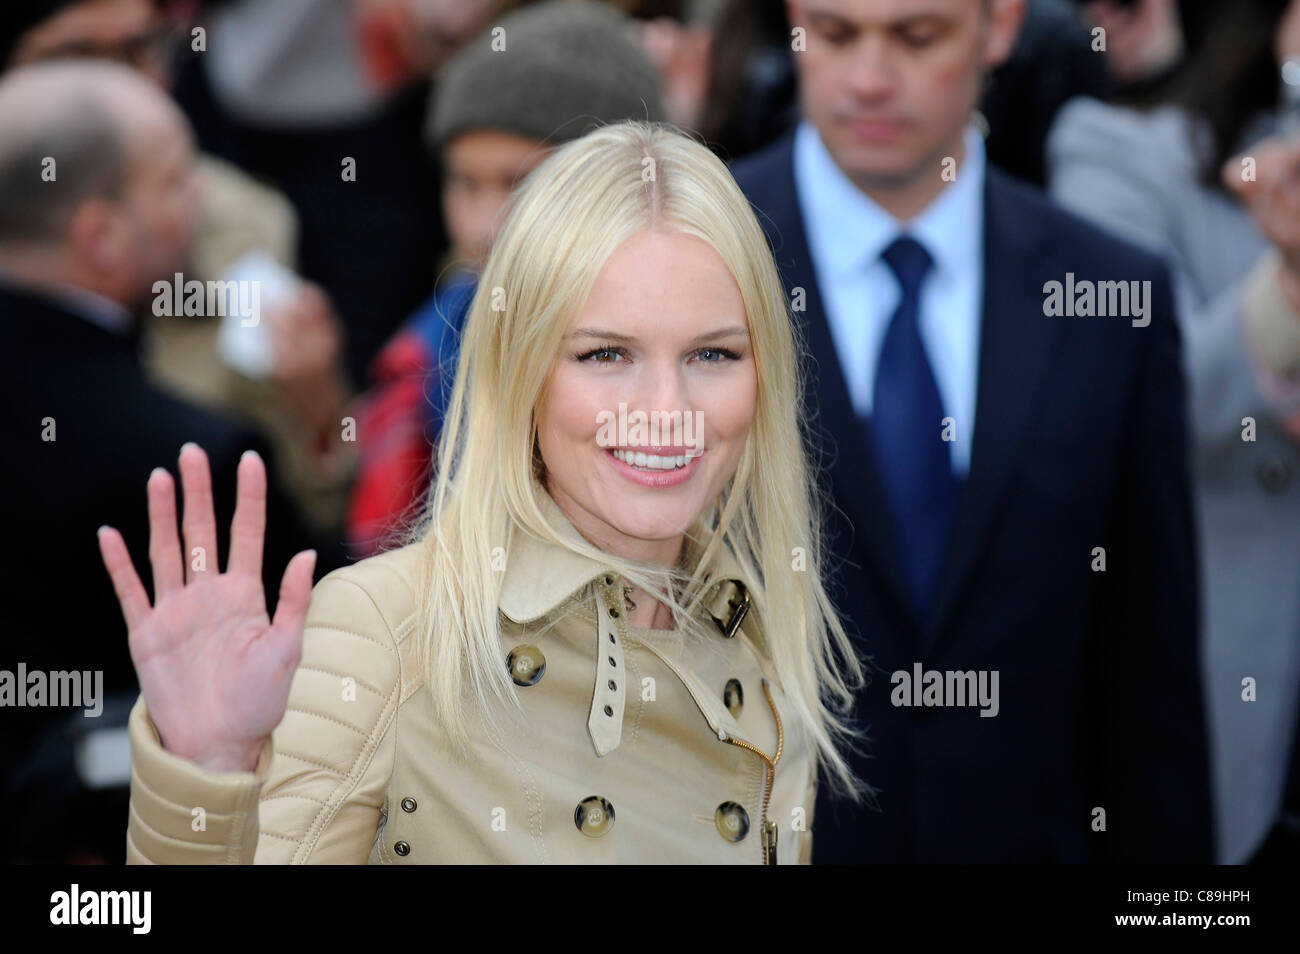 Kate Bosworth 2011 - Image Copyright 2011 Spotlight Celebrity Photo Stock